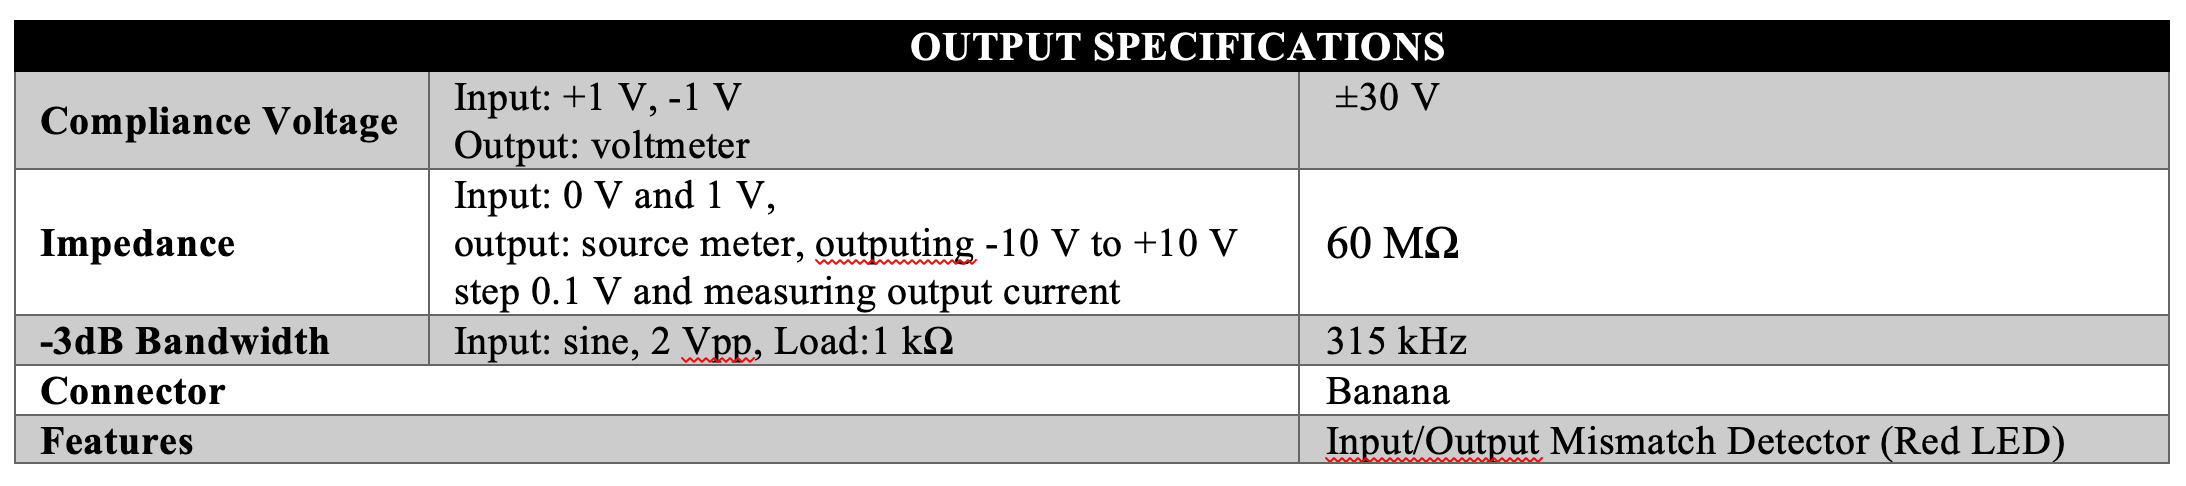 Caputron High Current Linear Current Isolator Output Specifications